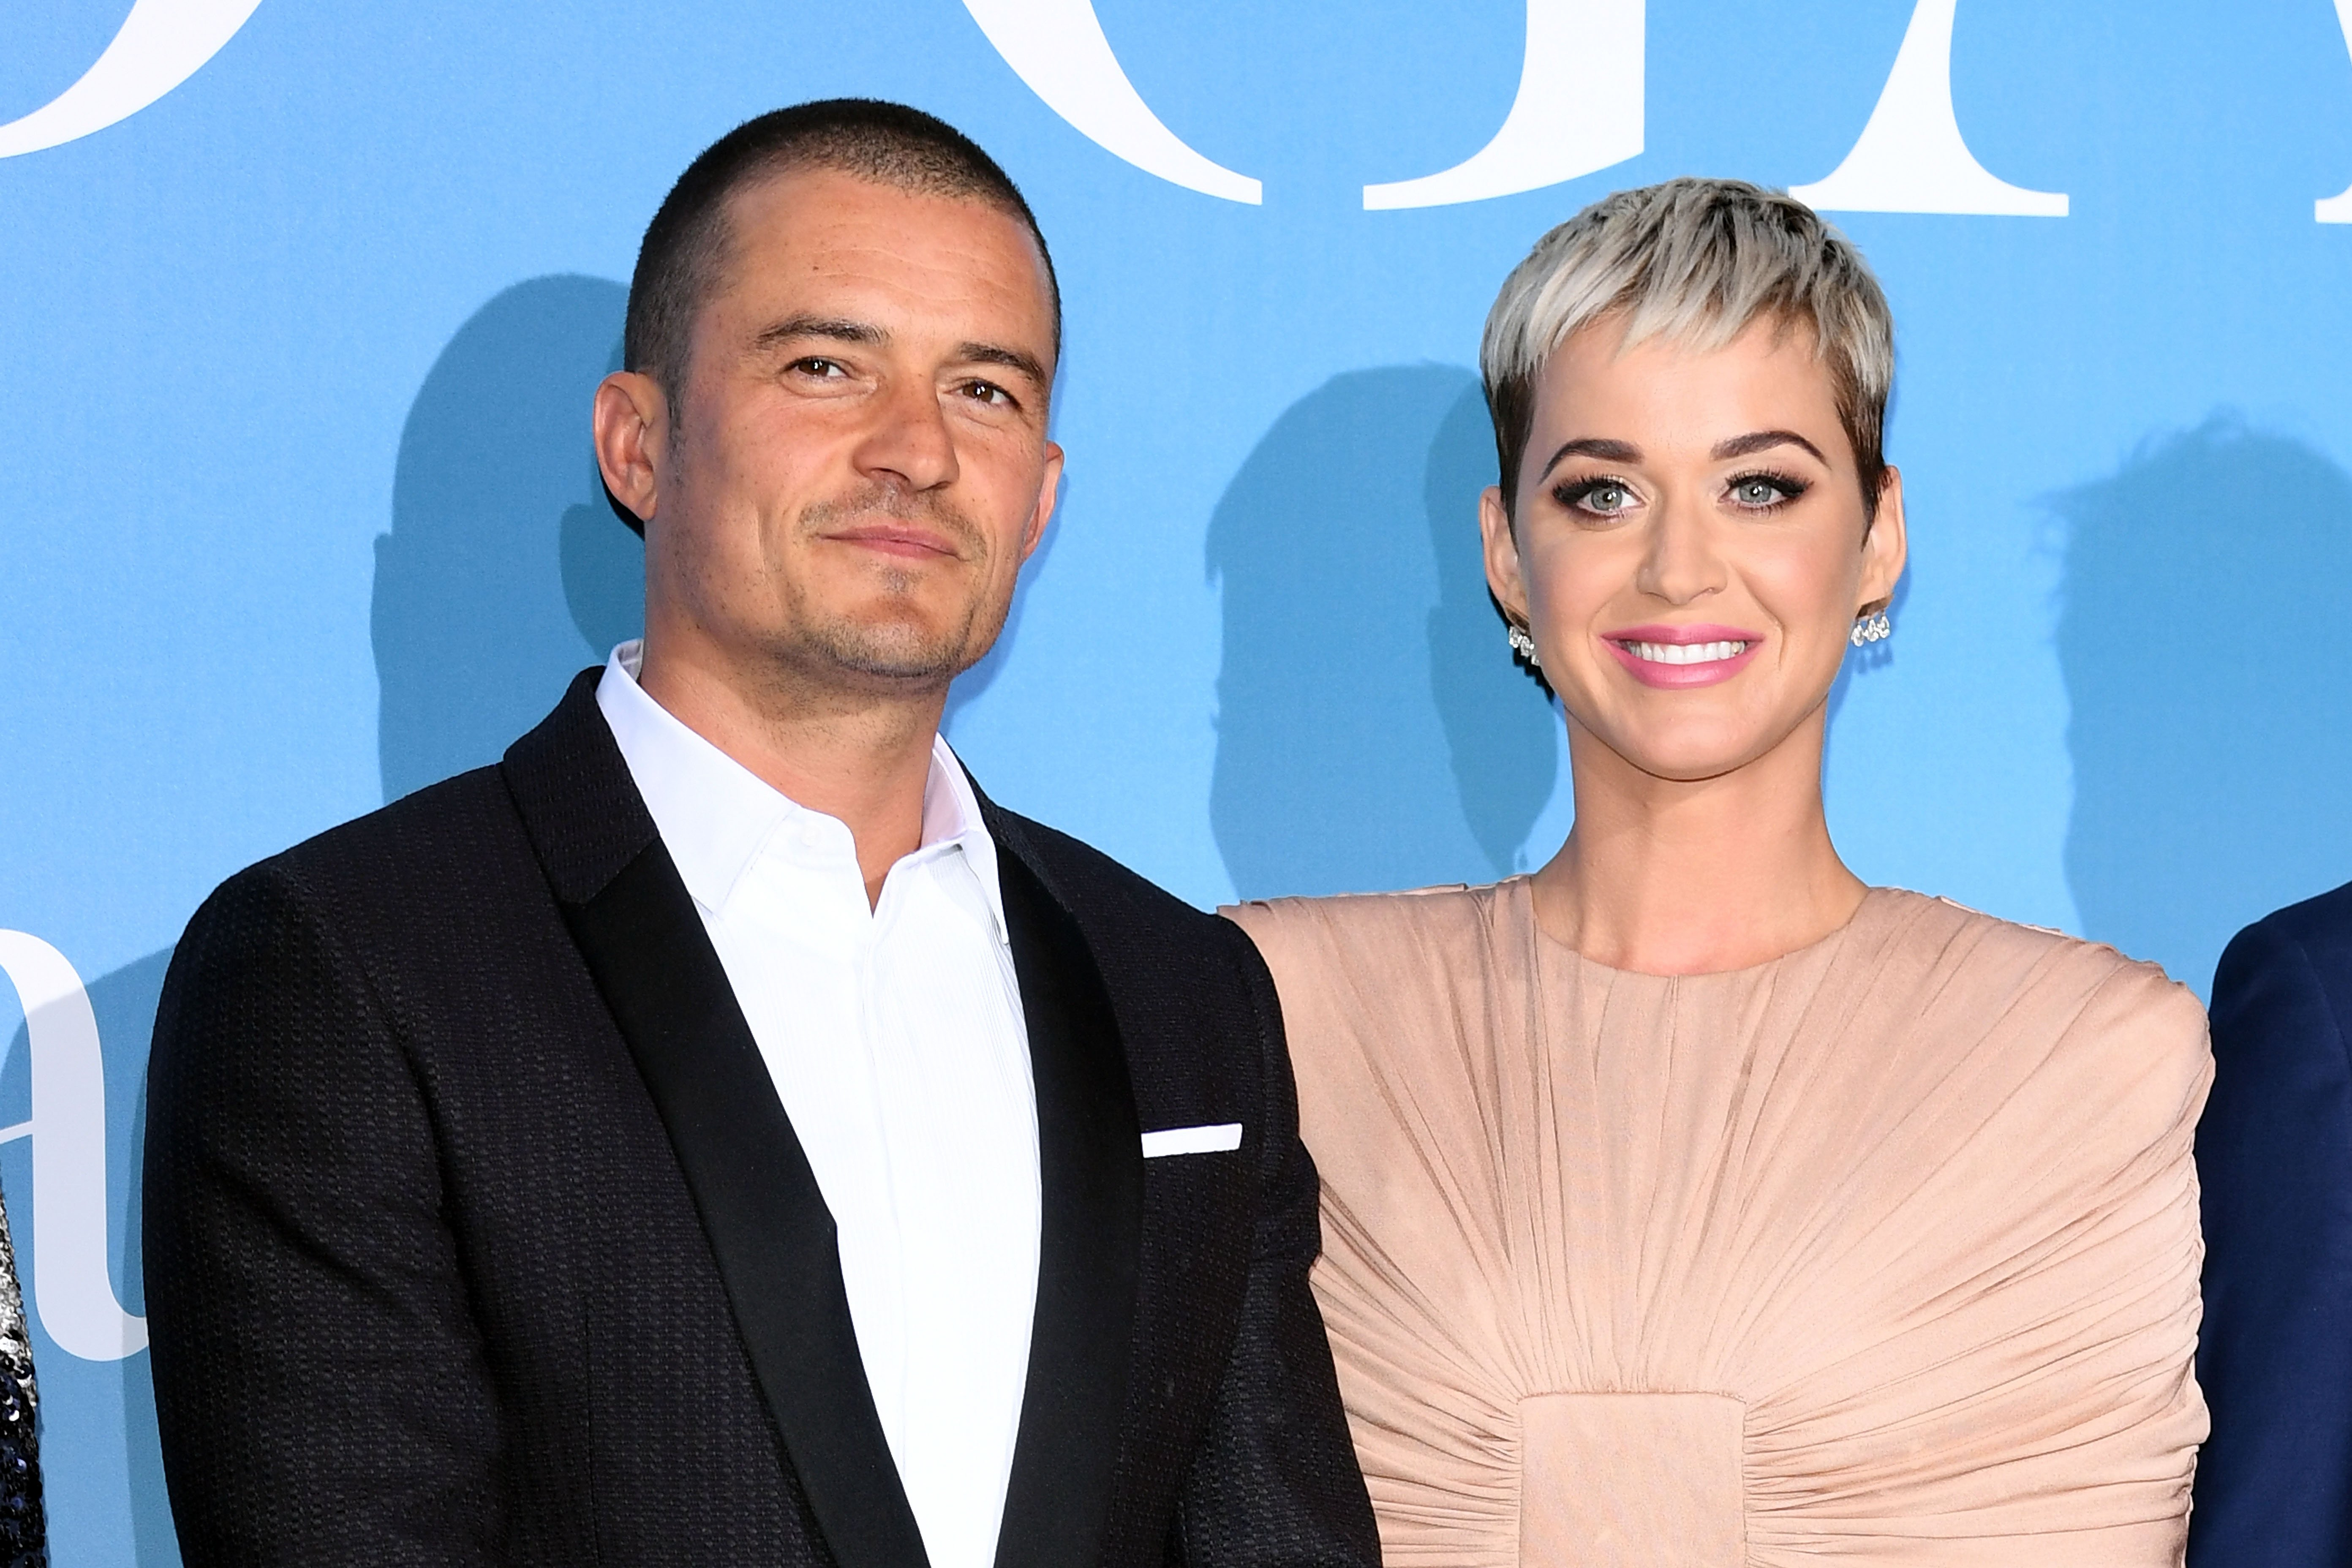 Orlando Bloom and Katy Perry attend the Gala for the Global Ocean on September 26, 2018, in Monte-Carlo, Monaco.   Source: Getty Images.